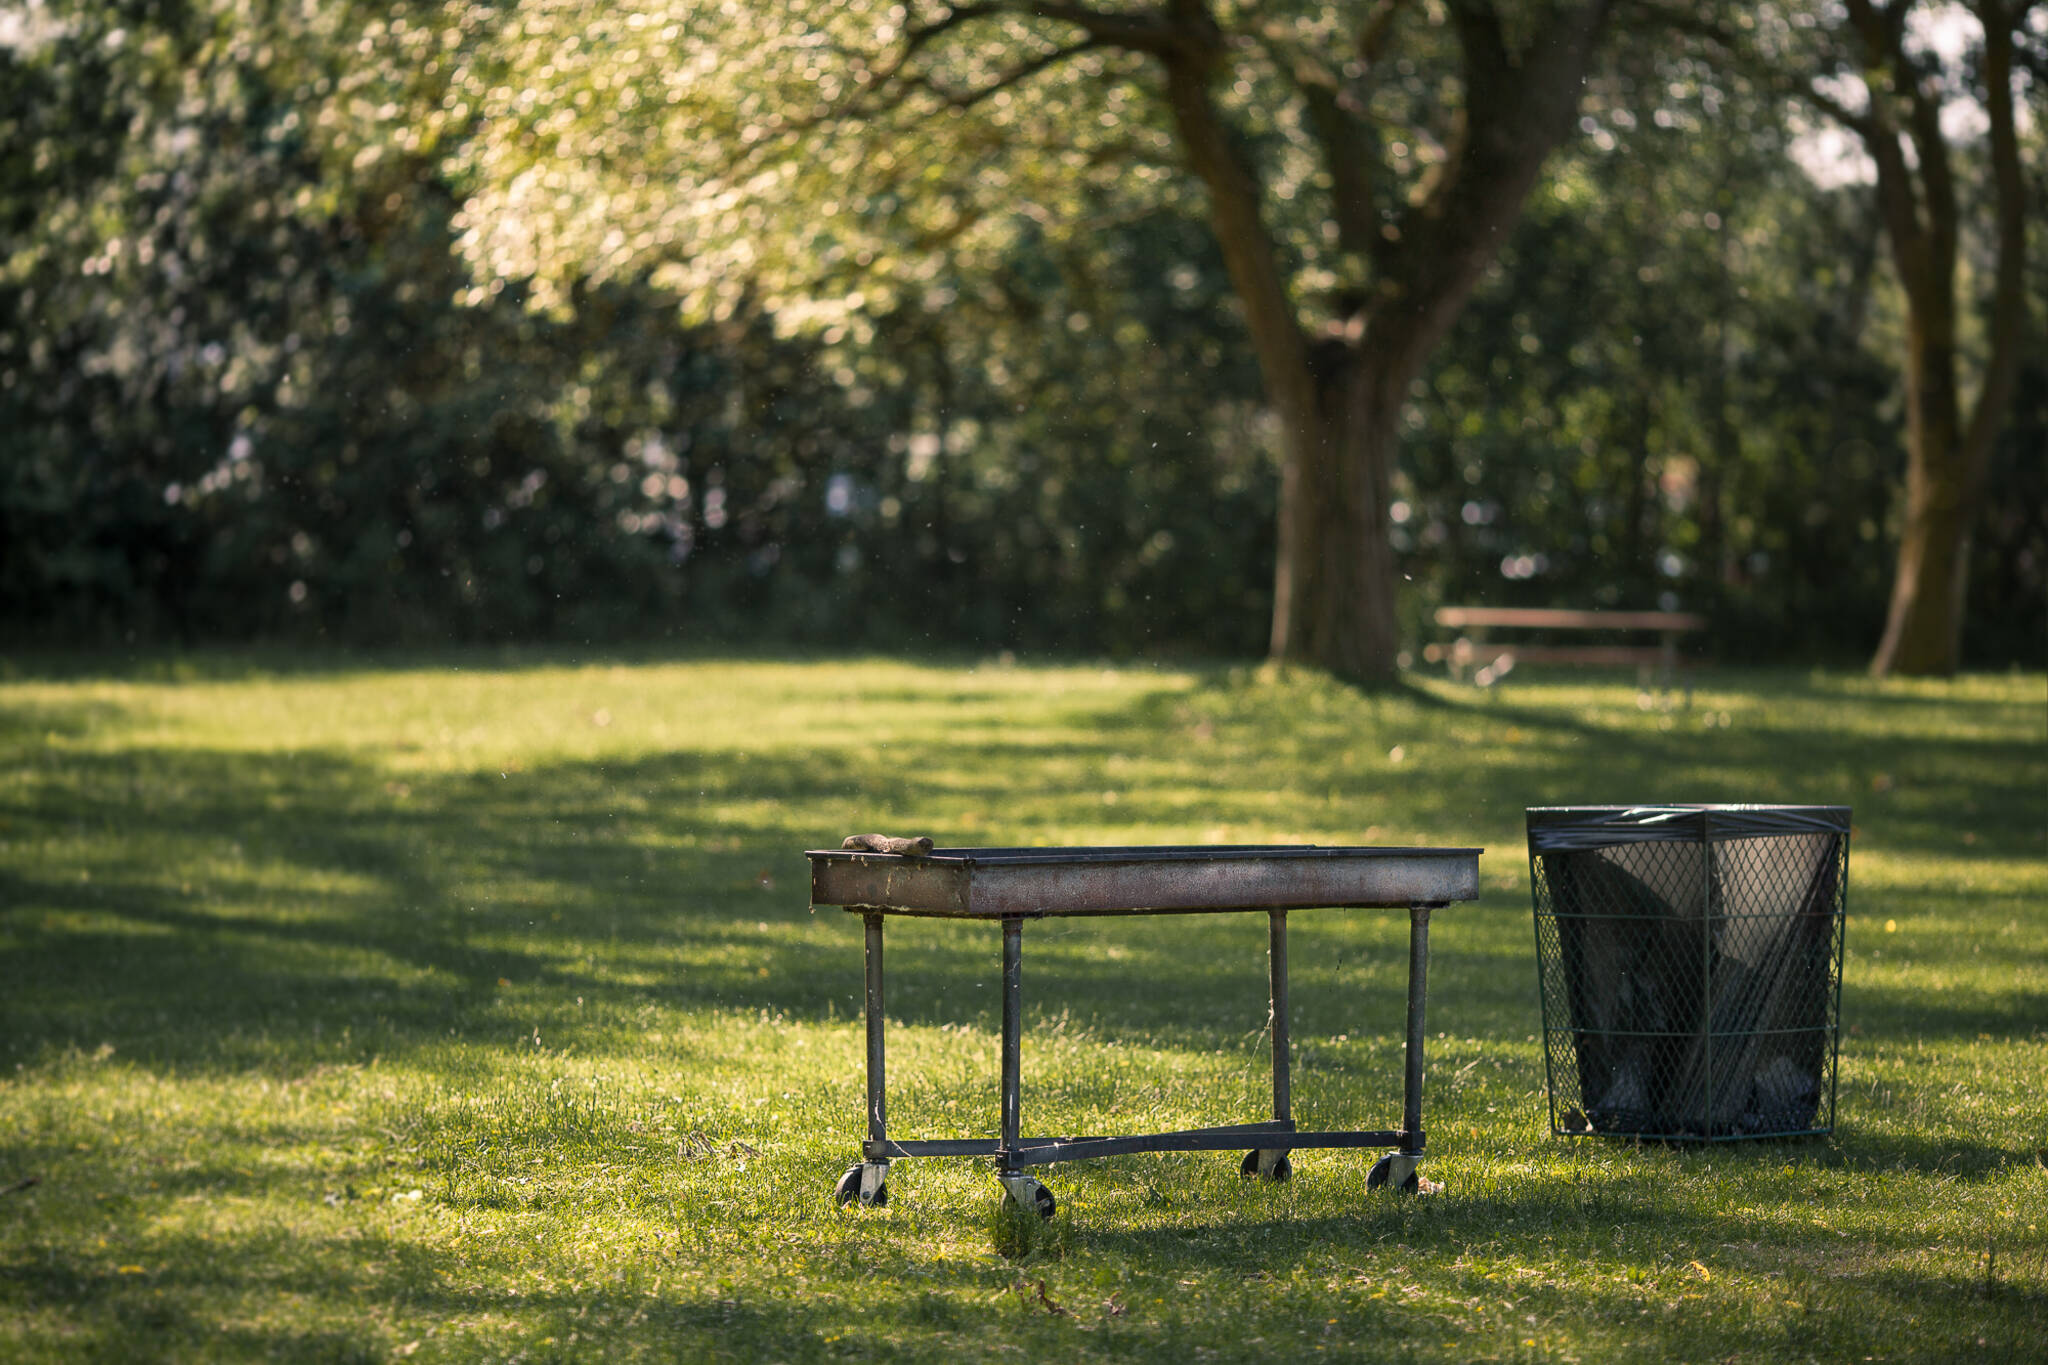 The Top 5 Parks With Outdoor Bbq Grills In Toronto